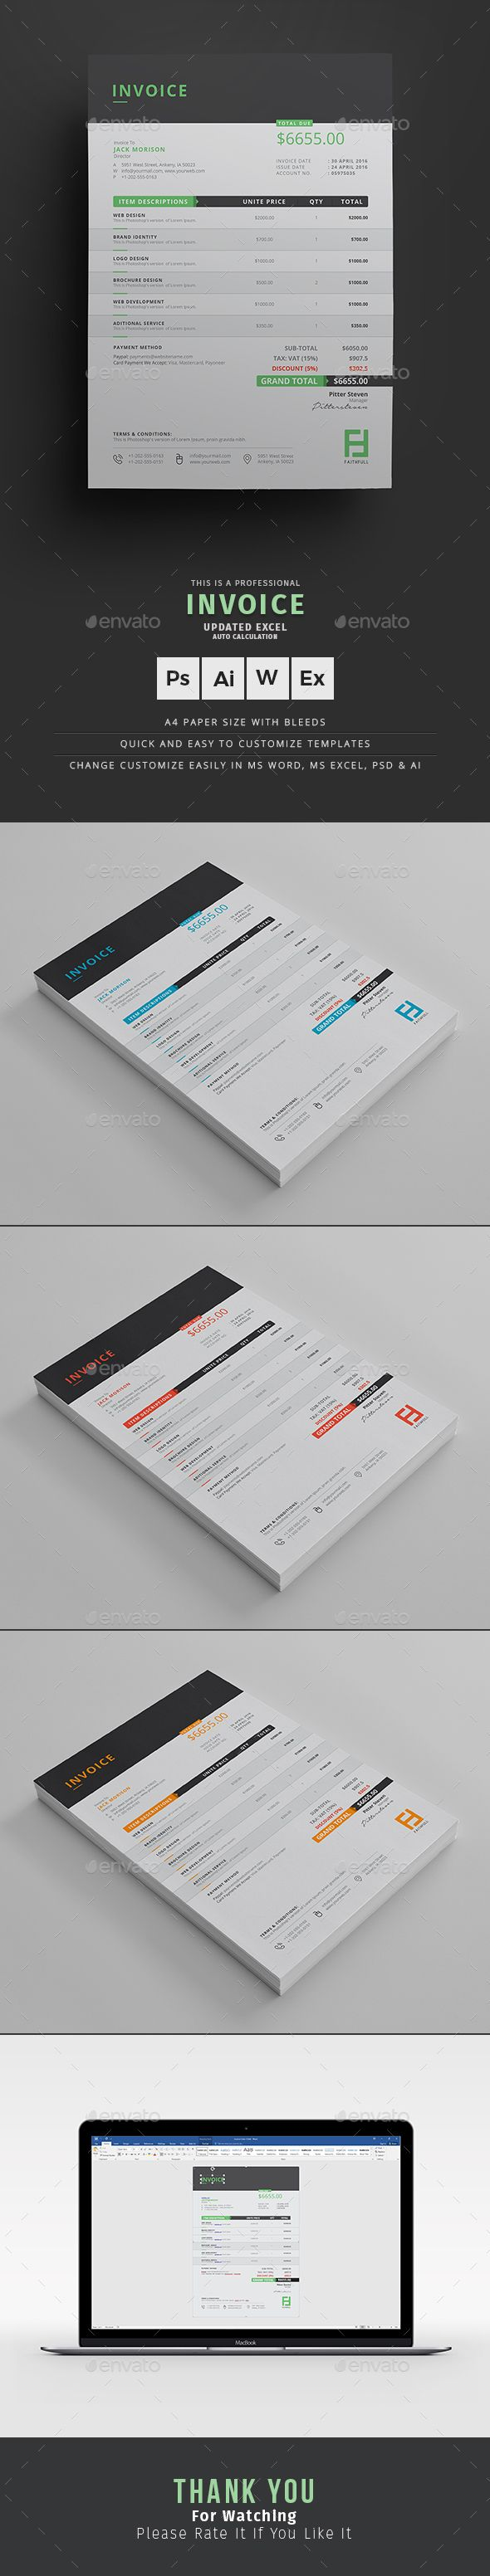 Invoice by themedevisers Corporate Invoice Excel Template. Use this Invoice for personal, corporate or company billing purpose. This Simple Invoice will h